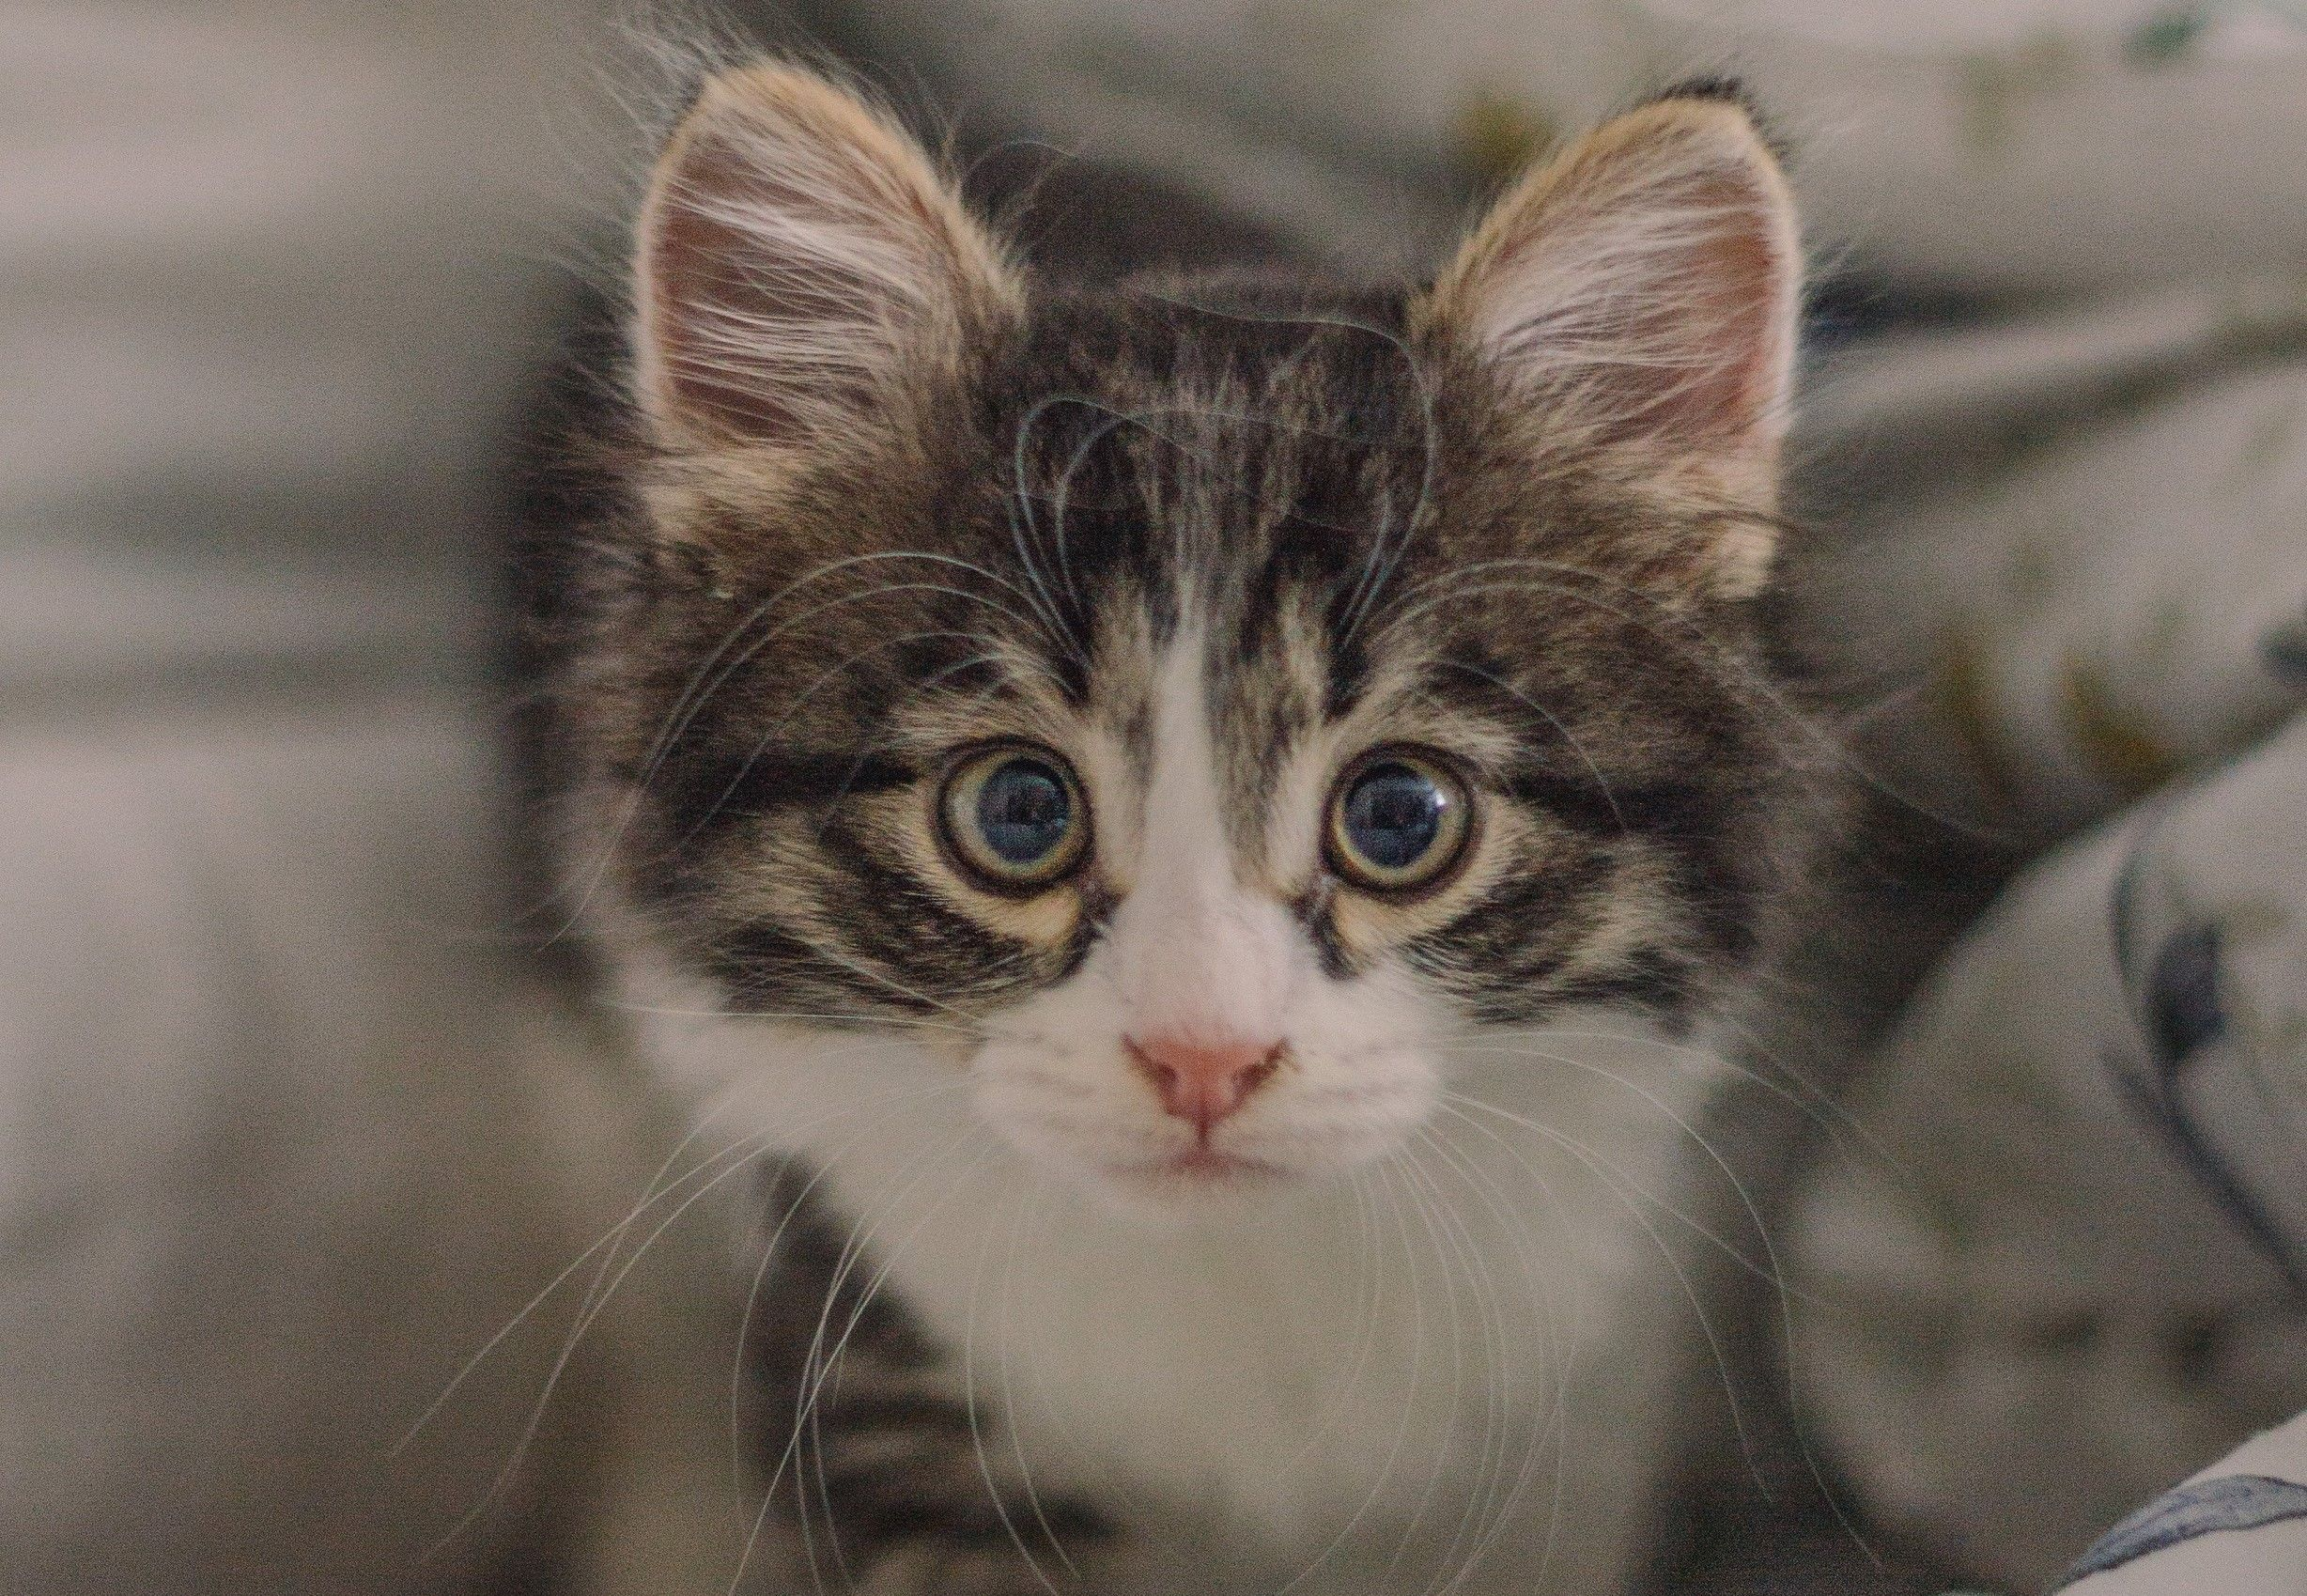 Animal Cat Cats Kitten Face Cute Hd Wallpaper Background Image In 2020 Cats And Kittens Animal Wallpaper Animals